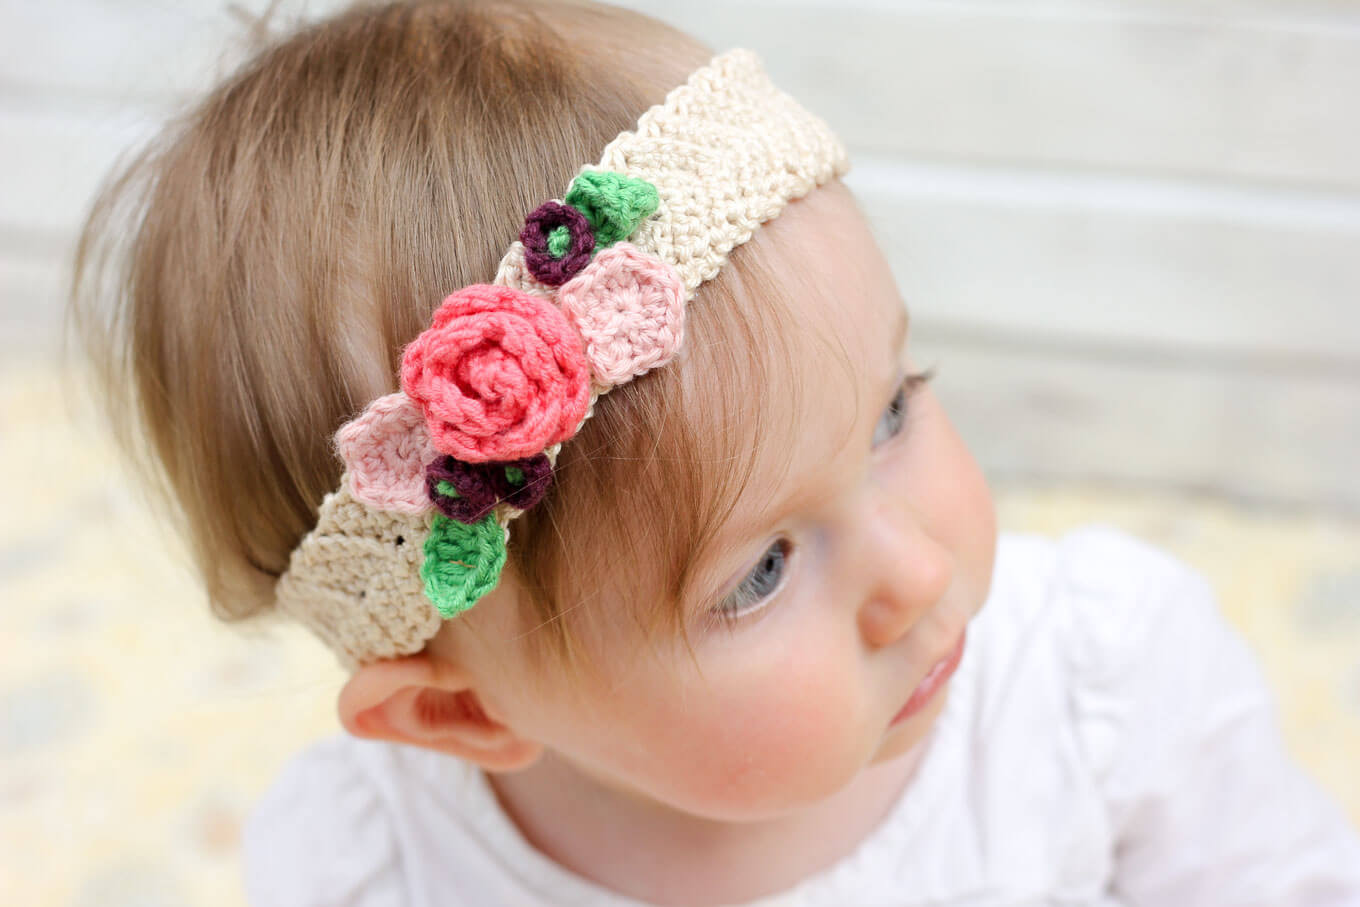 Crochet Headbands for Baby Beautiful Free Crochet Flower Headband Pattern Baby toddler Adult Of Innovative 46 Pics Crochet Headbands for Baby